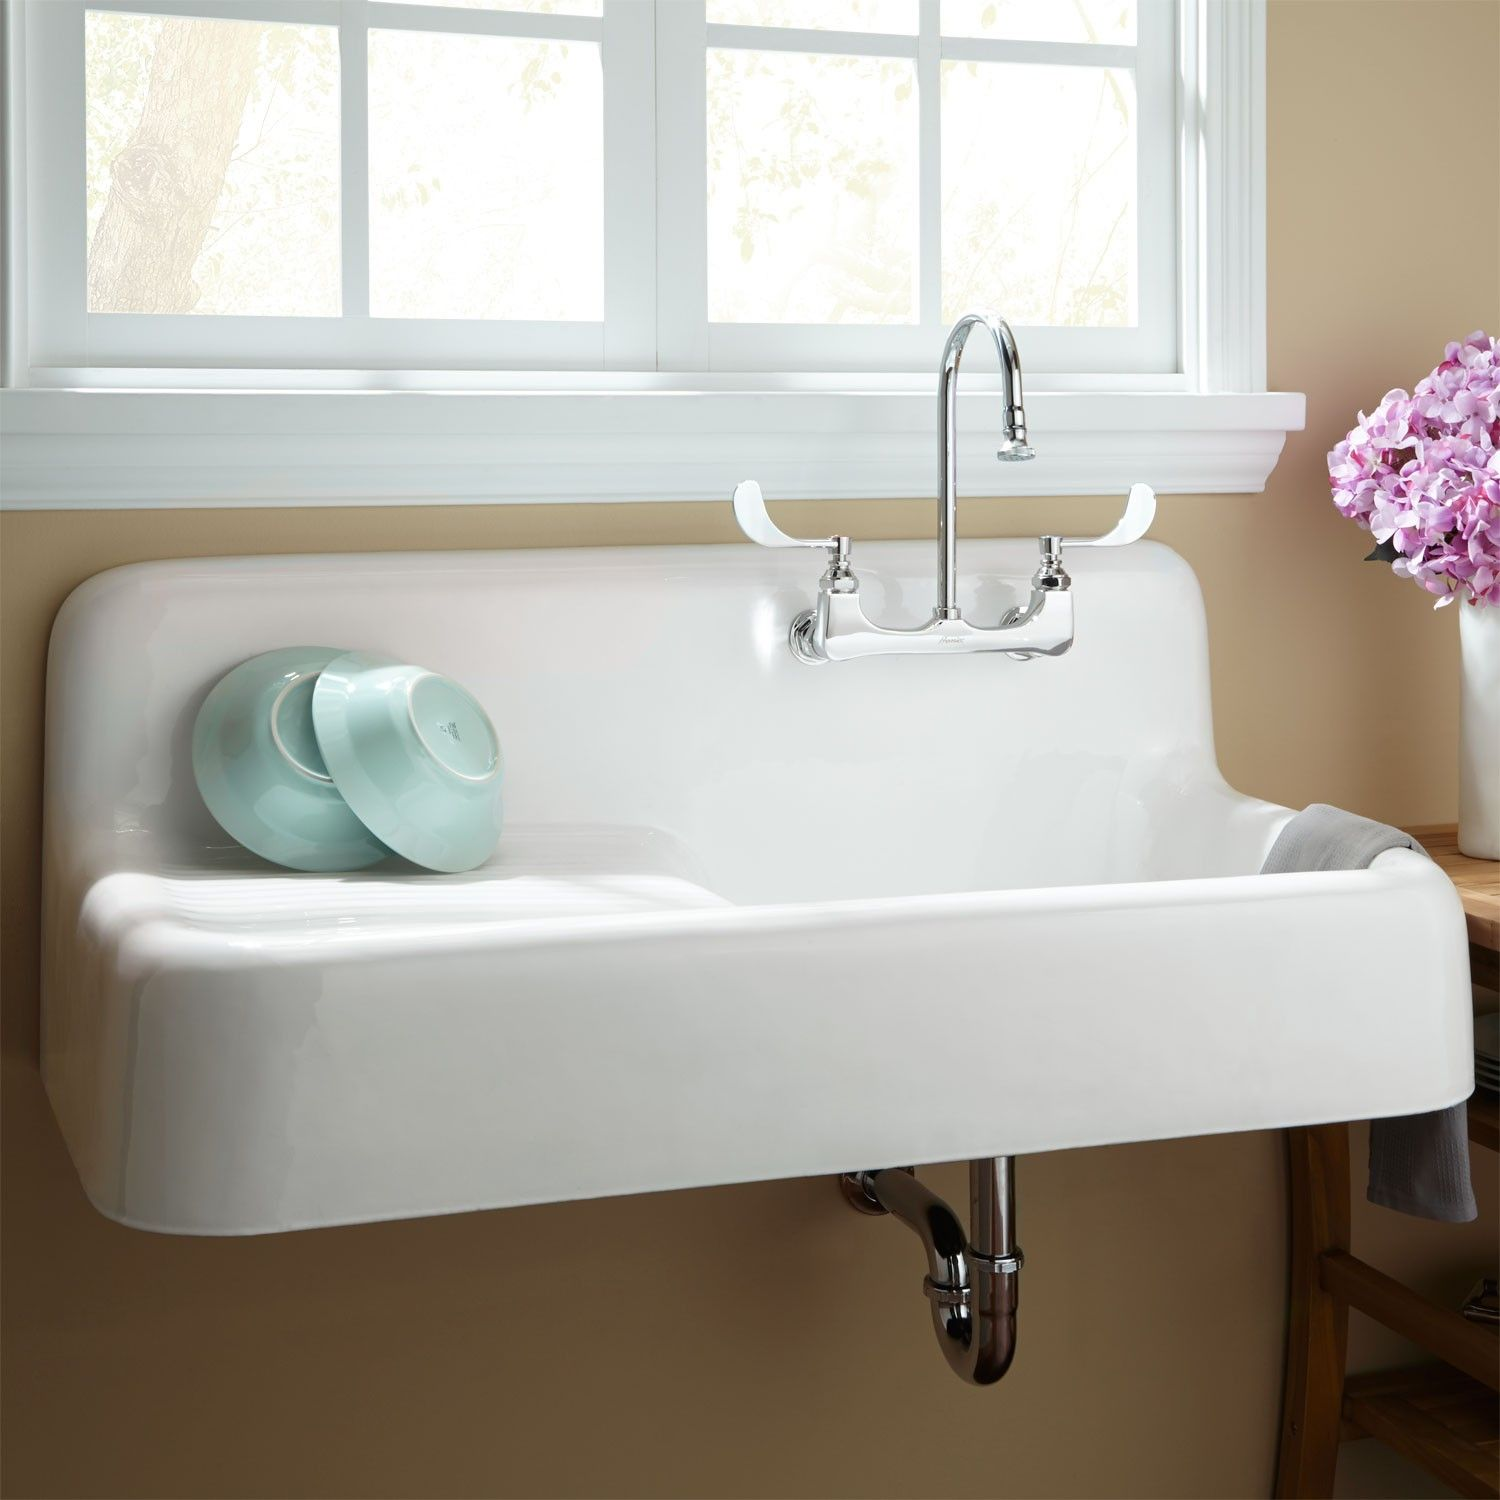 A vintage cast iron kitchen sink with drainboard famous in